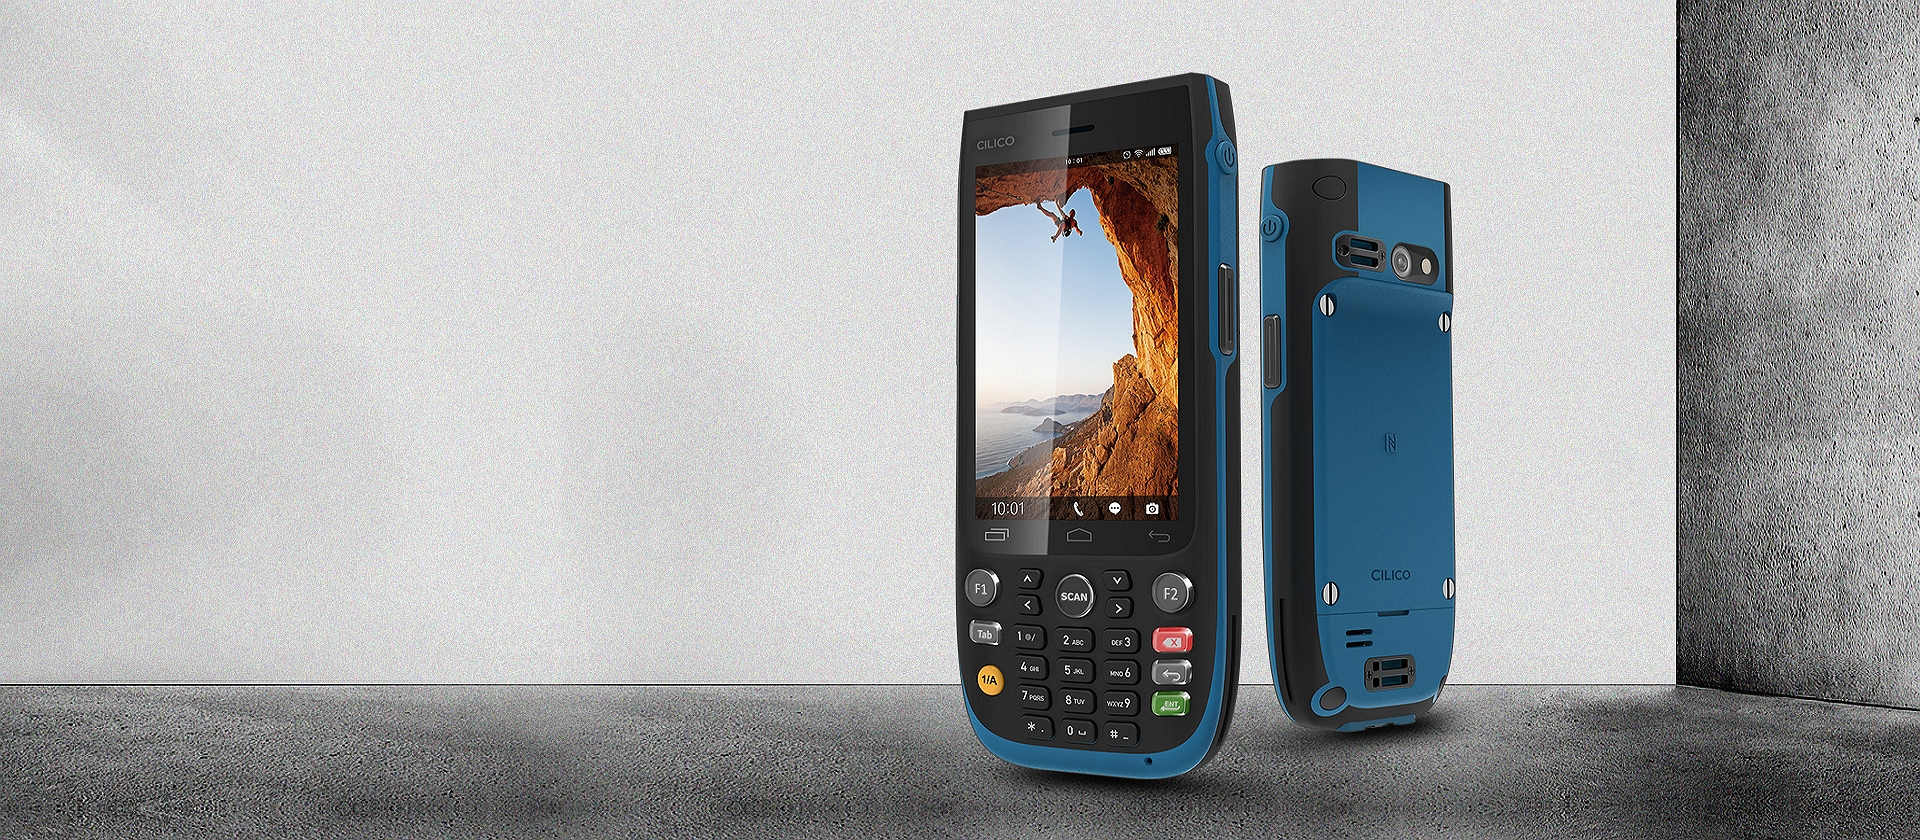 F750 rugged mobile computer